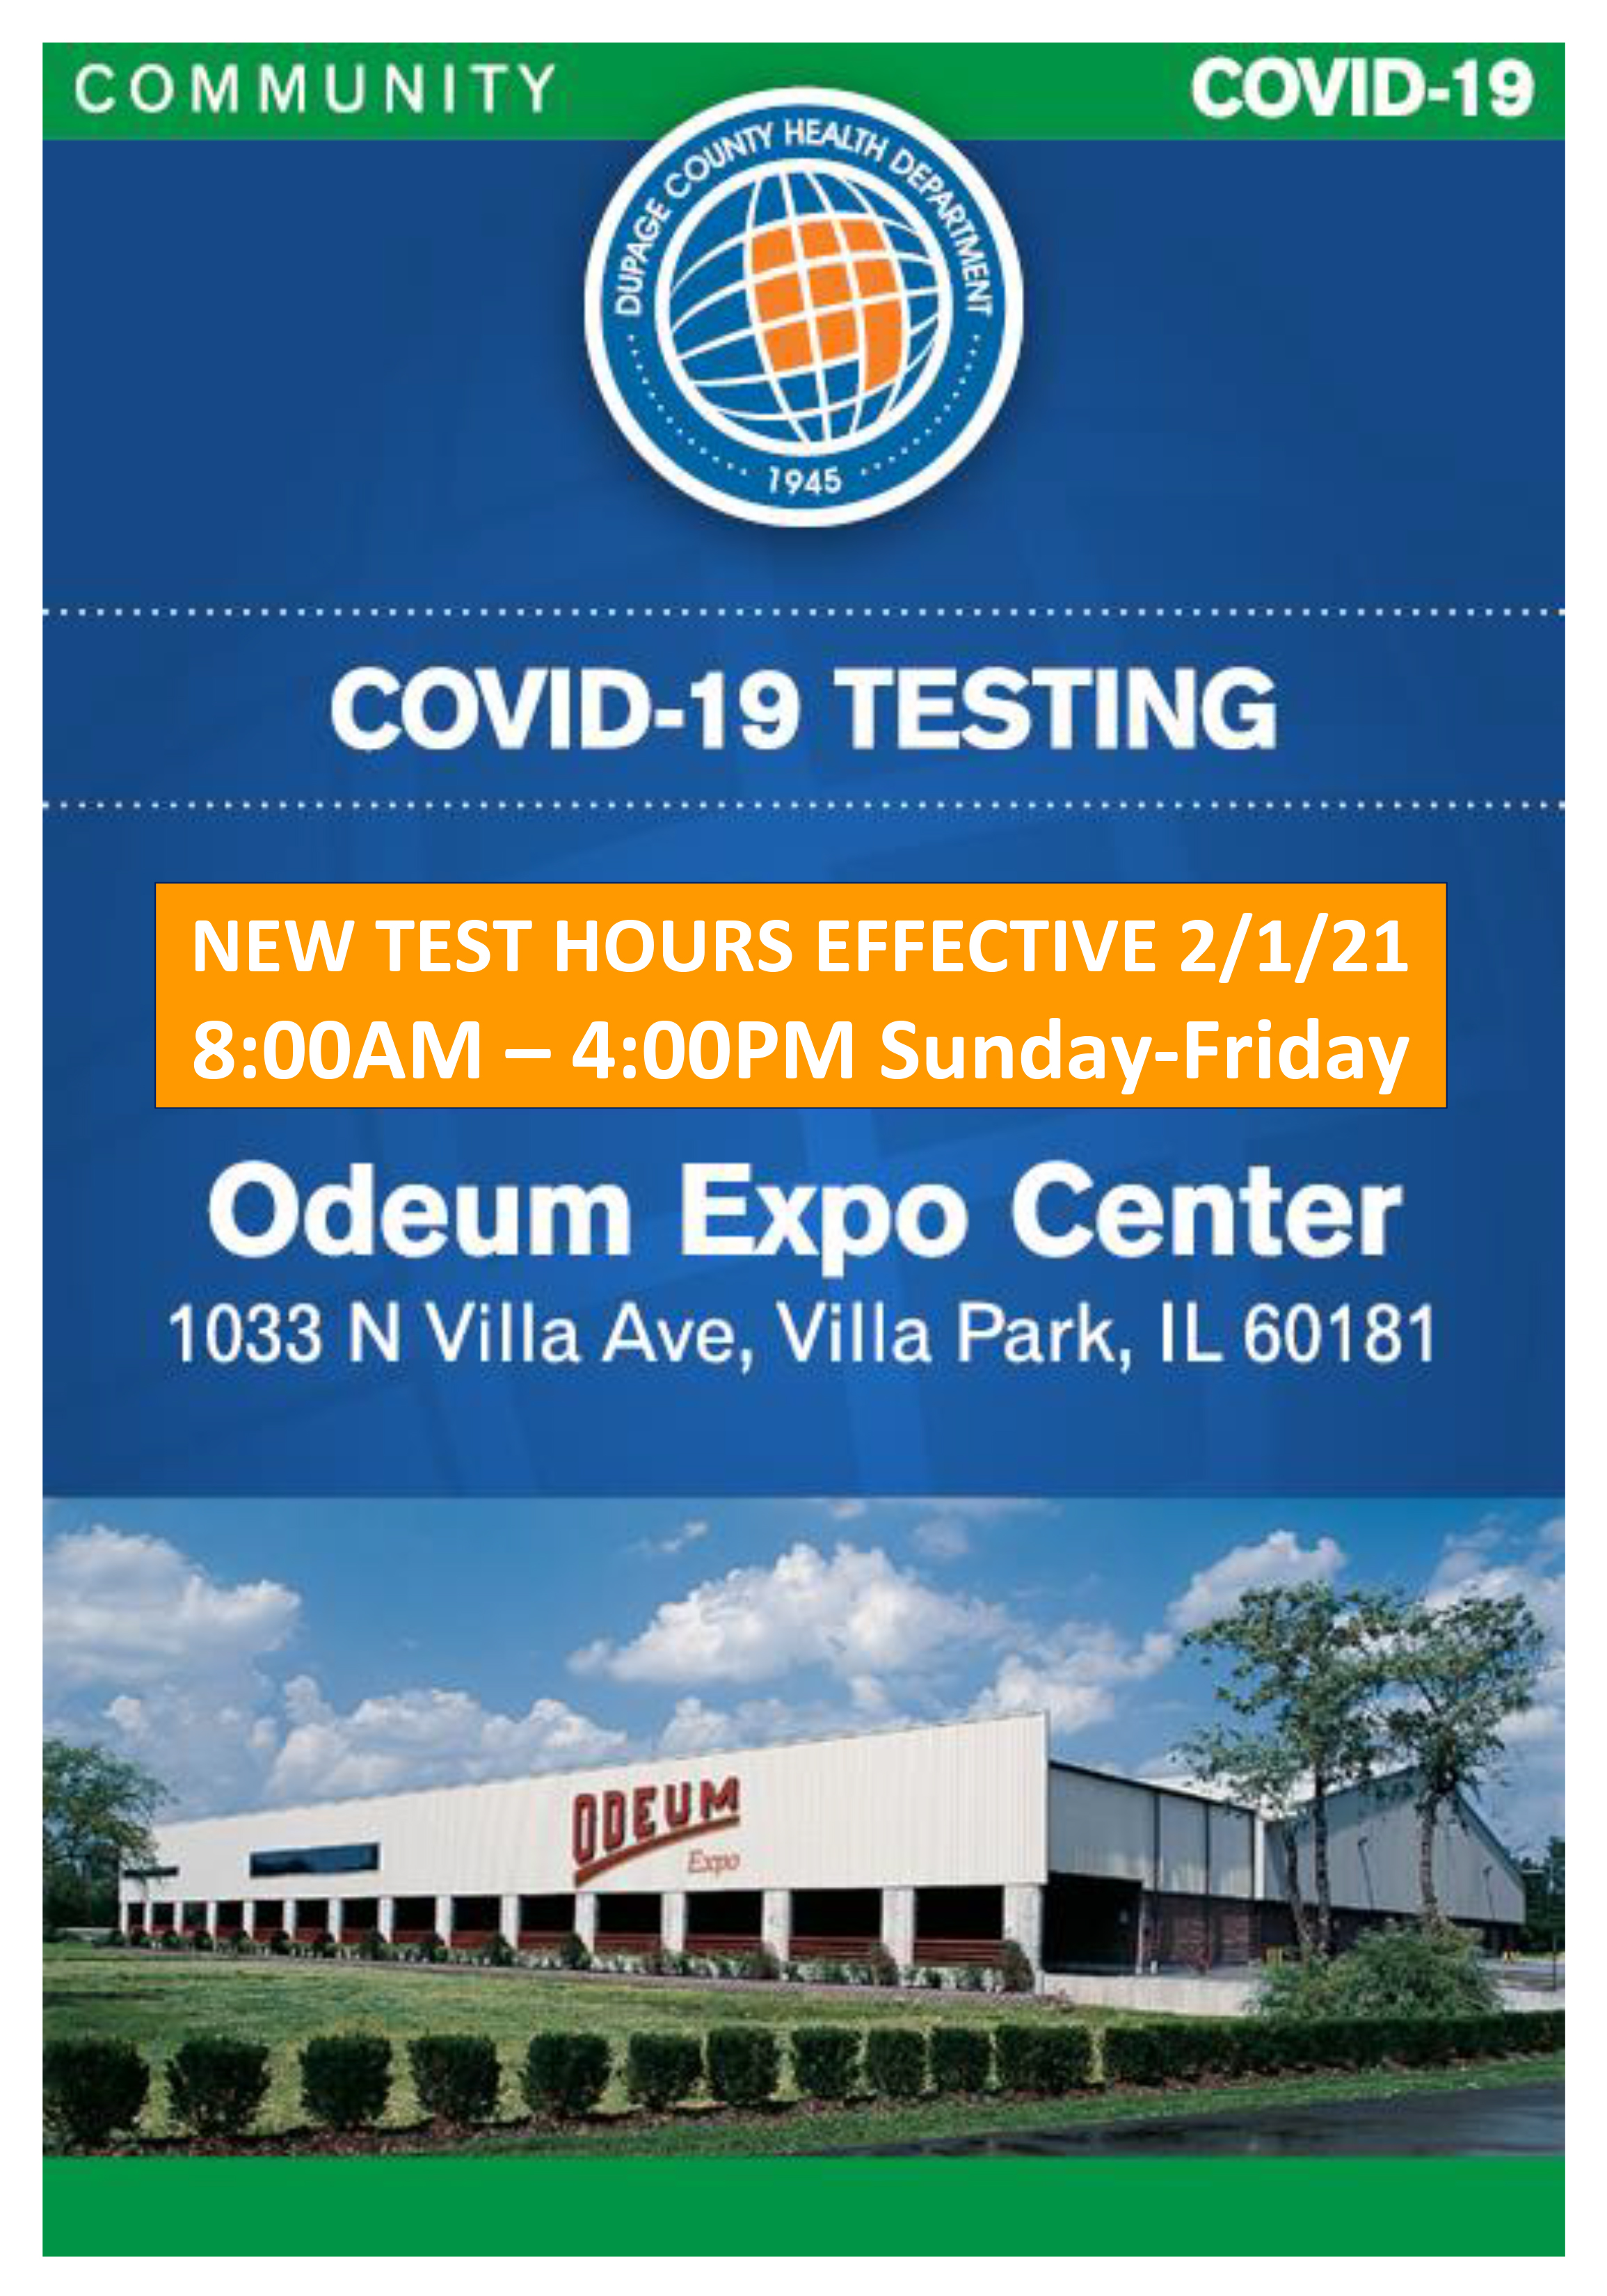 New COVID-19 Drive-Thru Testing Hours at the Odeum Expo Center Effective February 1, 2021, 8:00am-4:00pm Sundays-Fridays